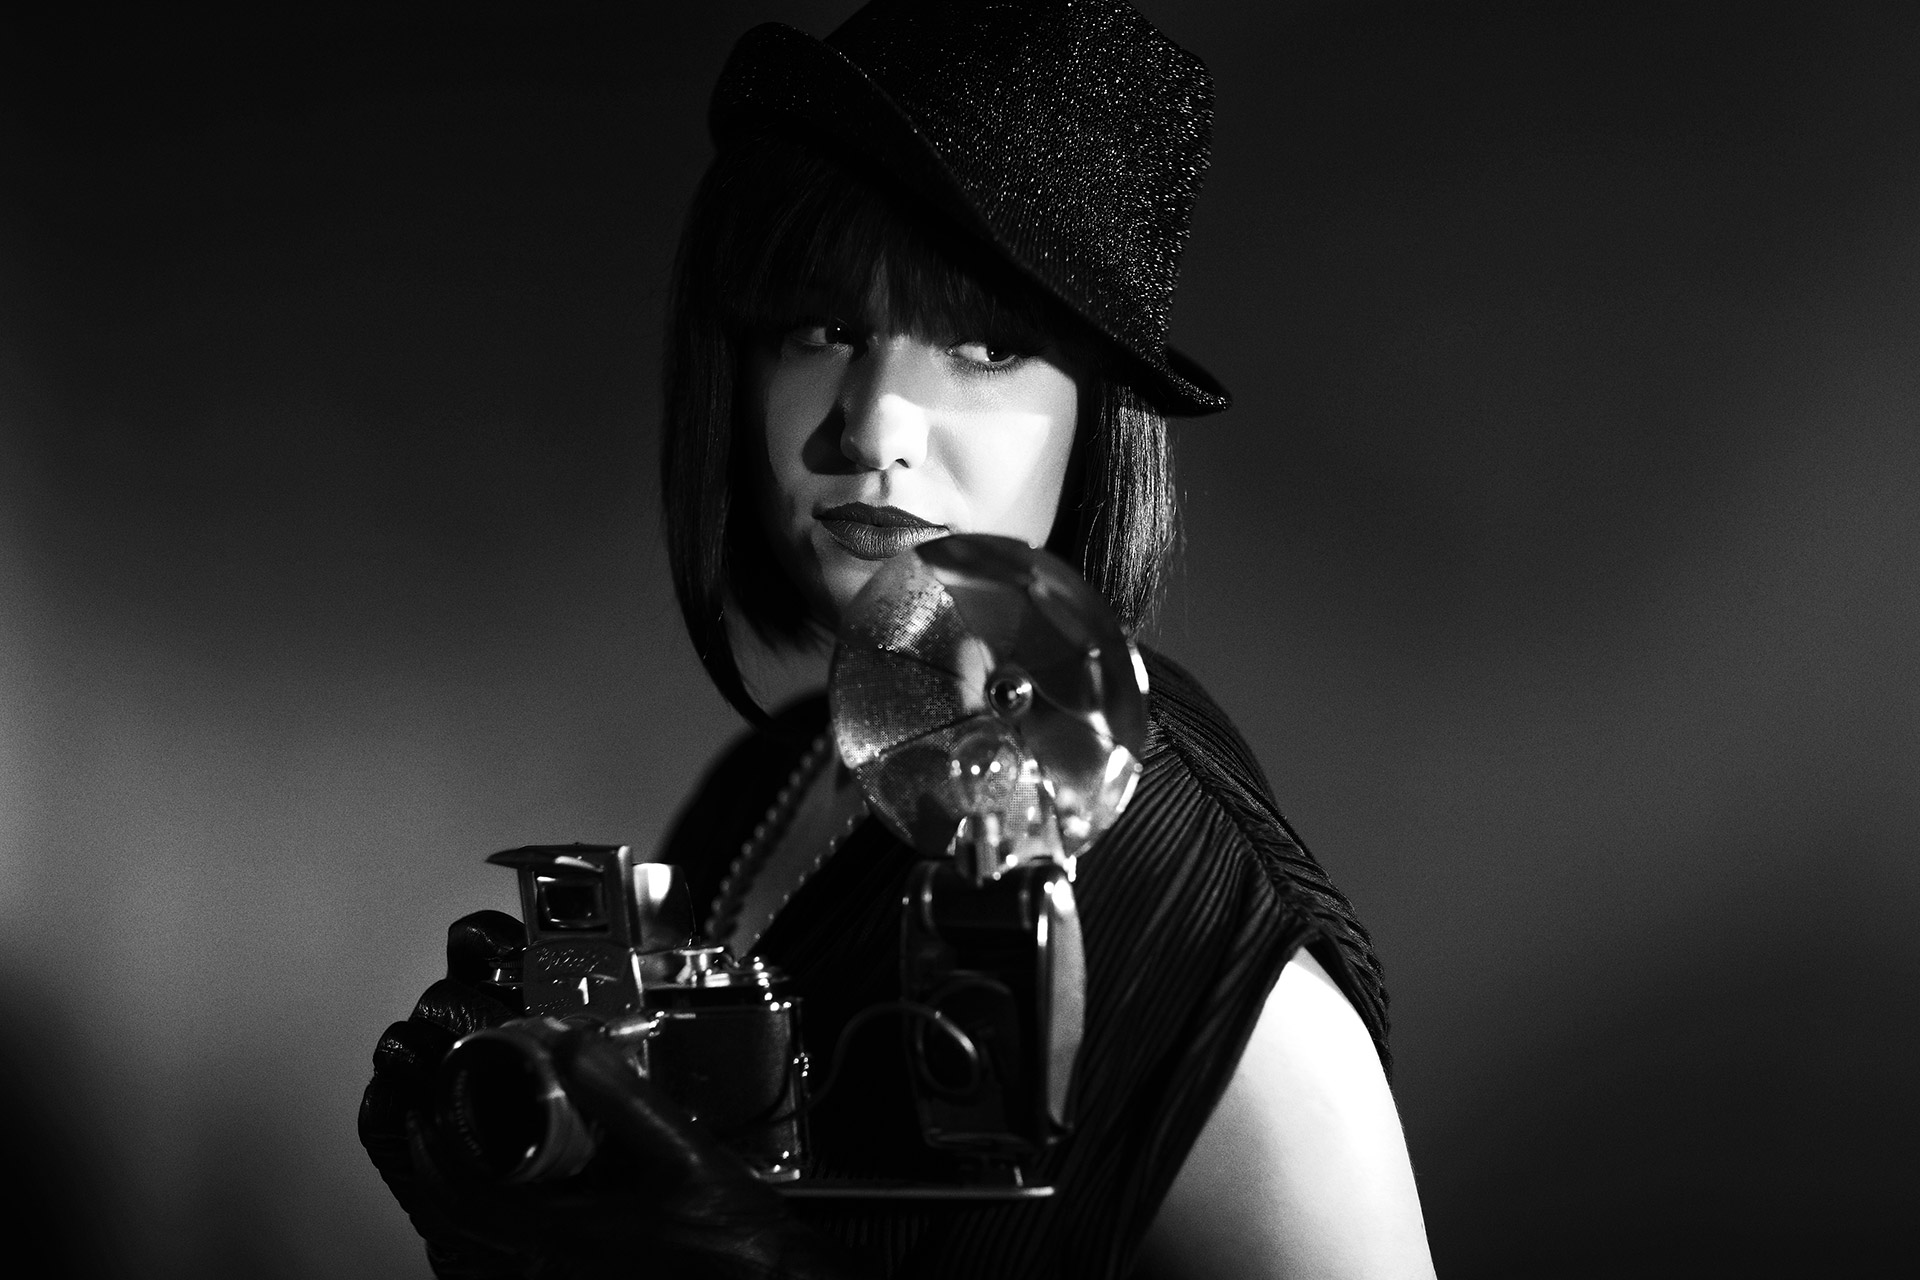 Old Hollywood style shooting